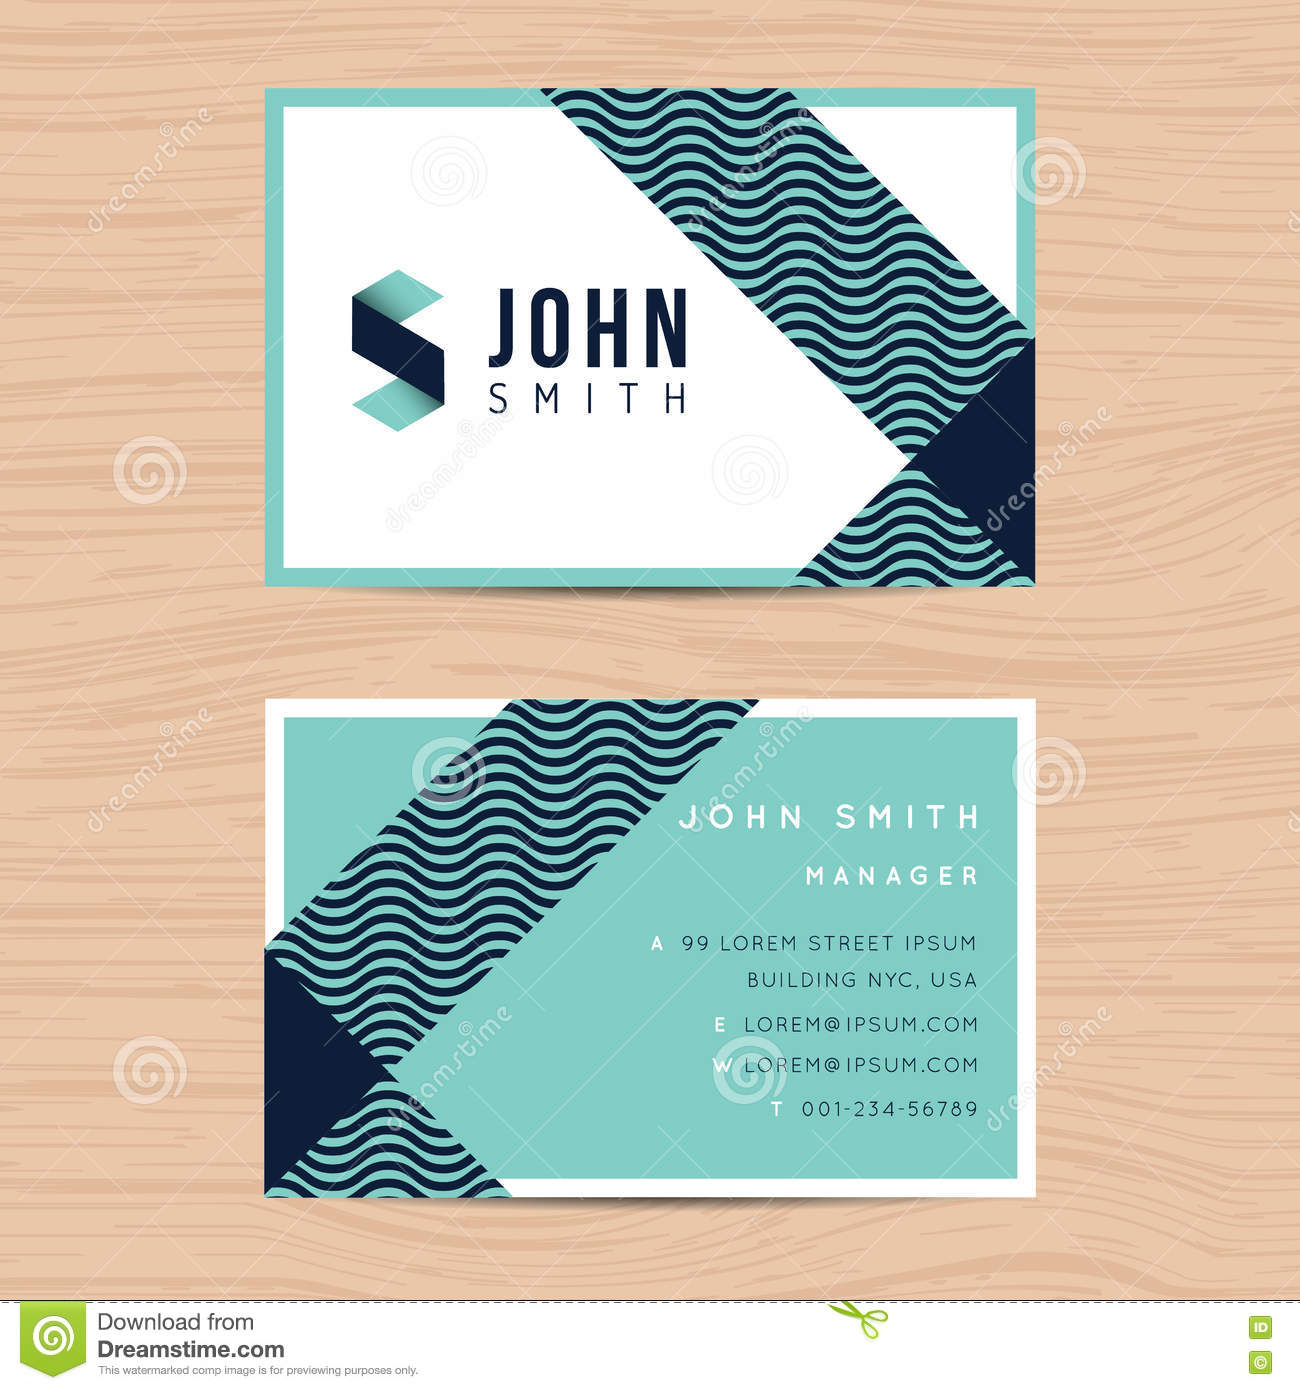 Modern and clean design business card template in abstract download modern and clean design business card template in abstract background printing design template cheaphphosting Image collections